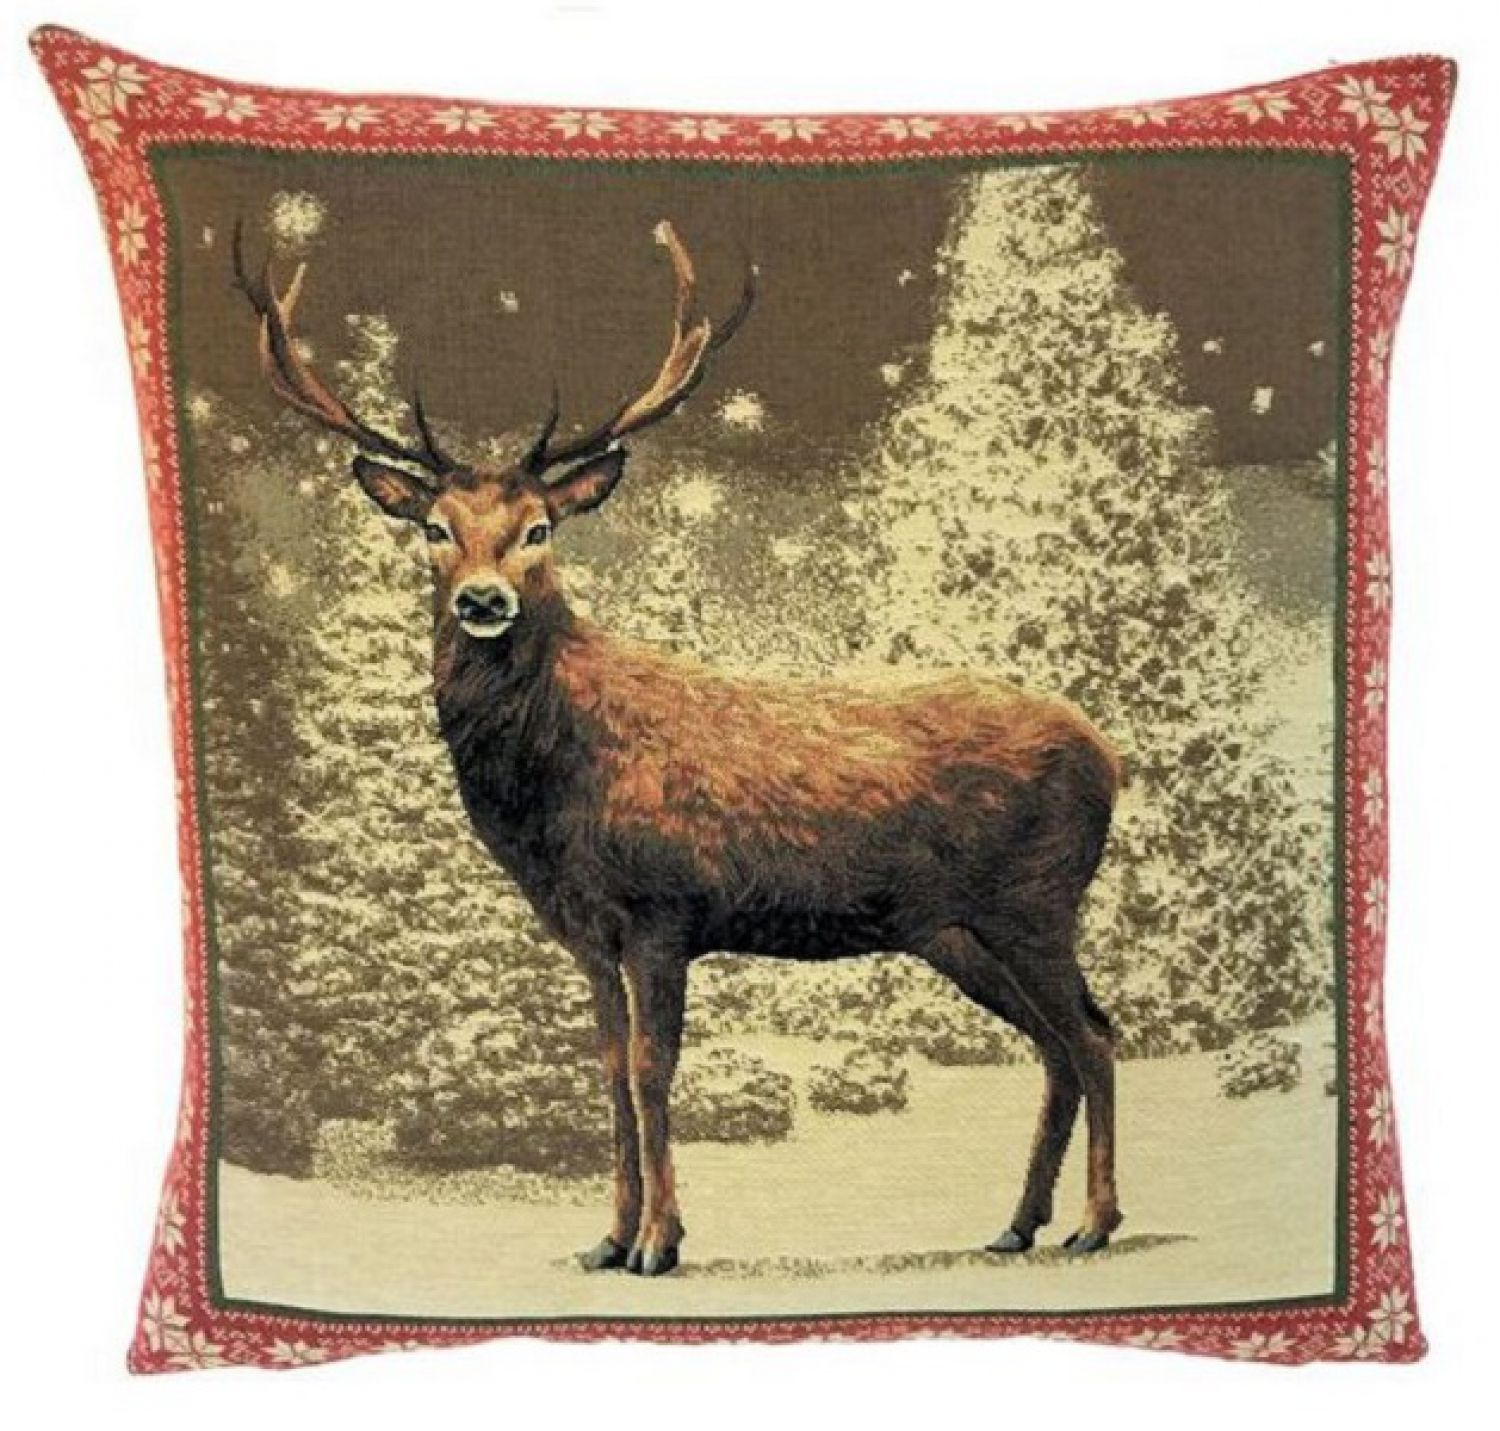 gobelin kissen winter hirsch incl f llung neu weihnachtsdeko landhausstil deer ebay. Black Bedroom Furniture Sets. Home Design Ideas